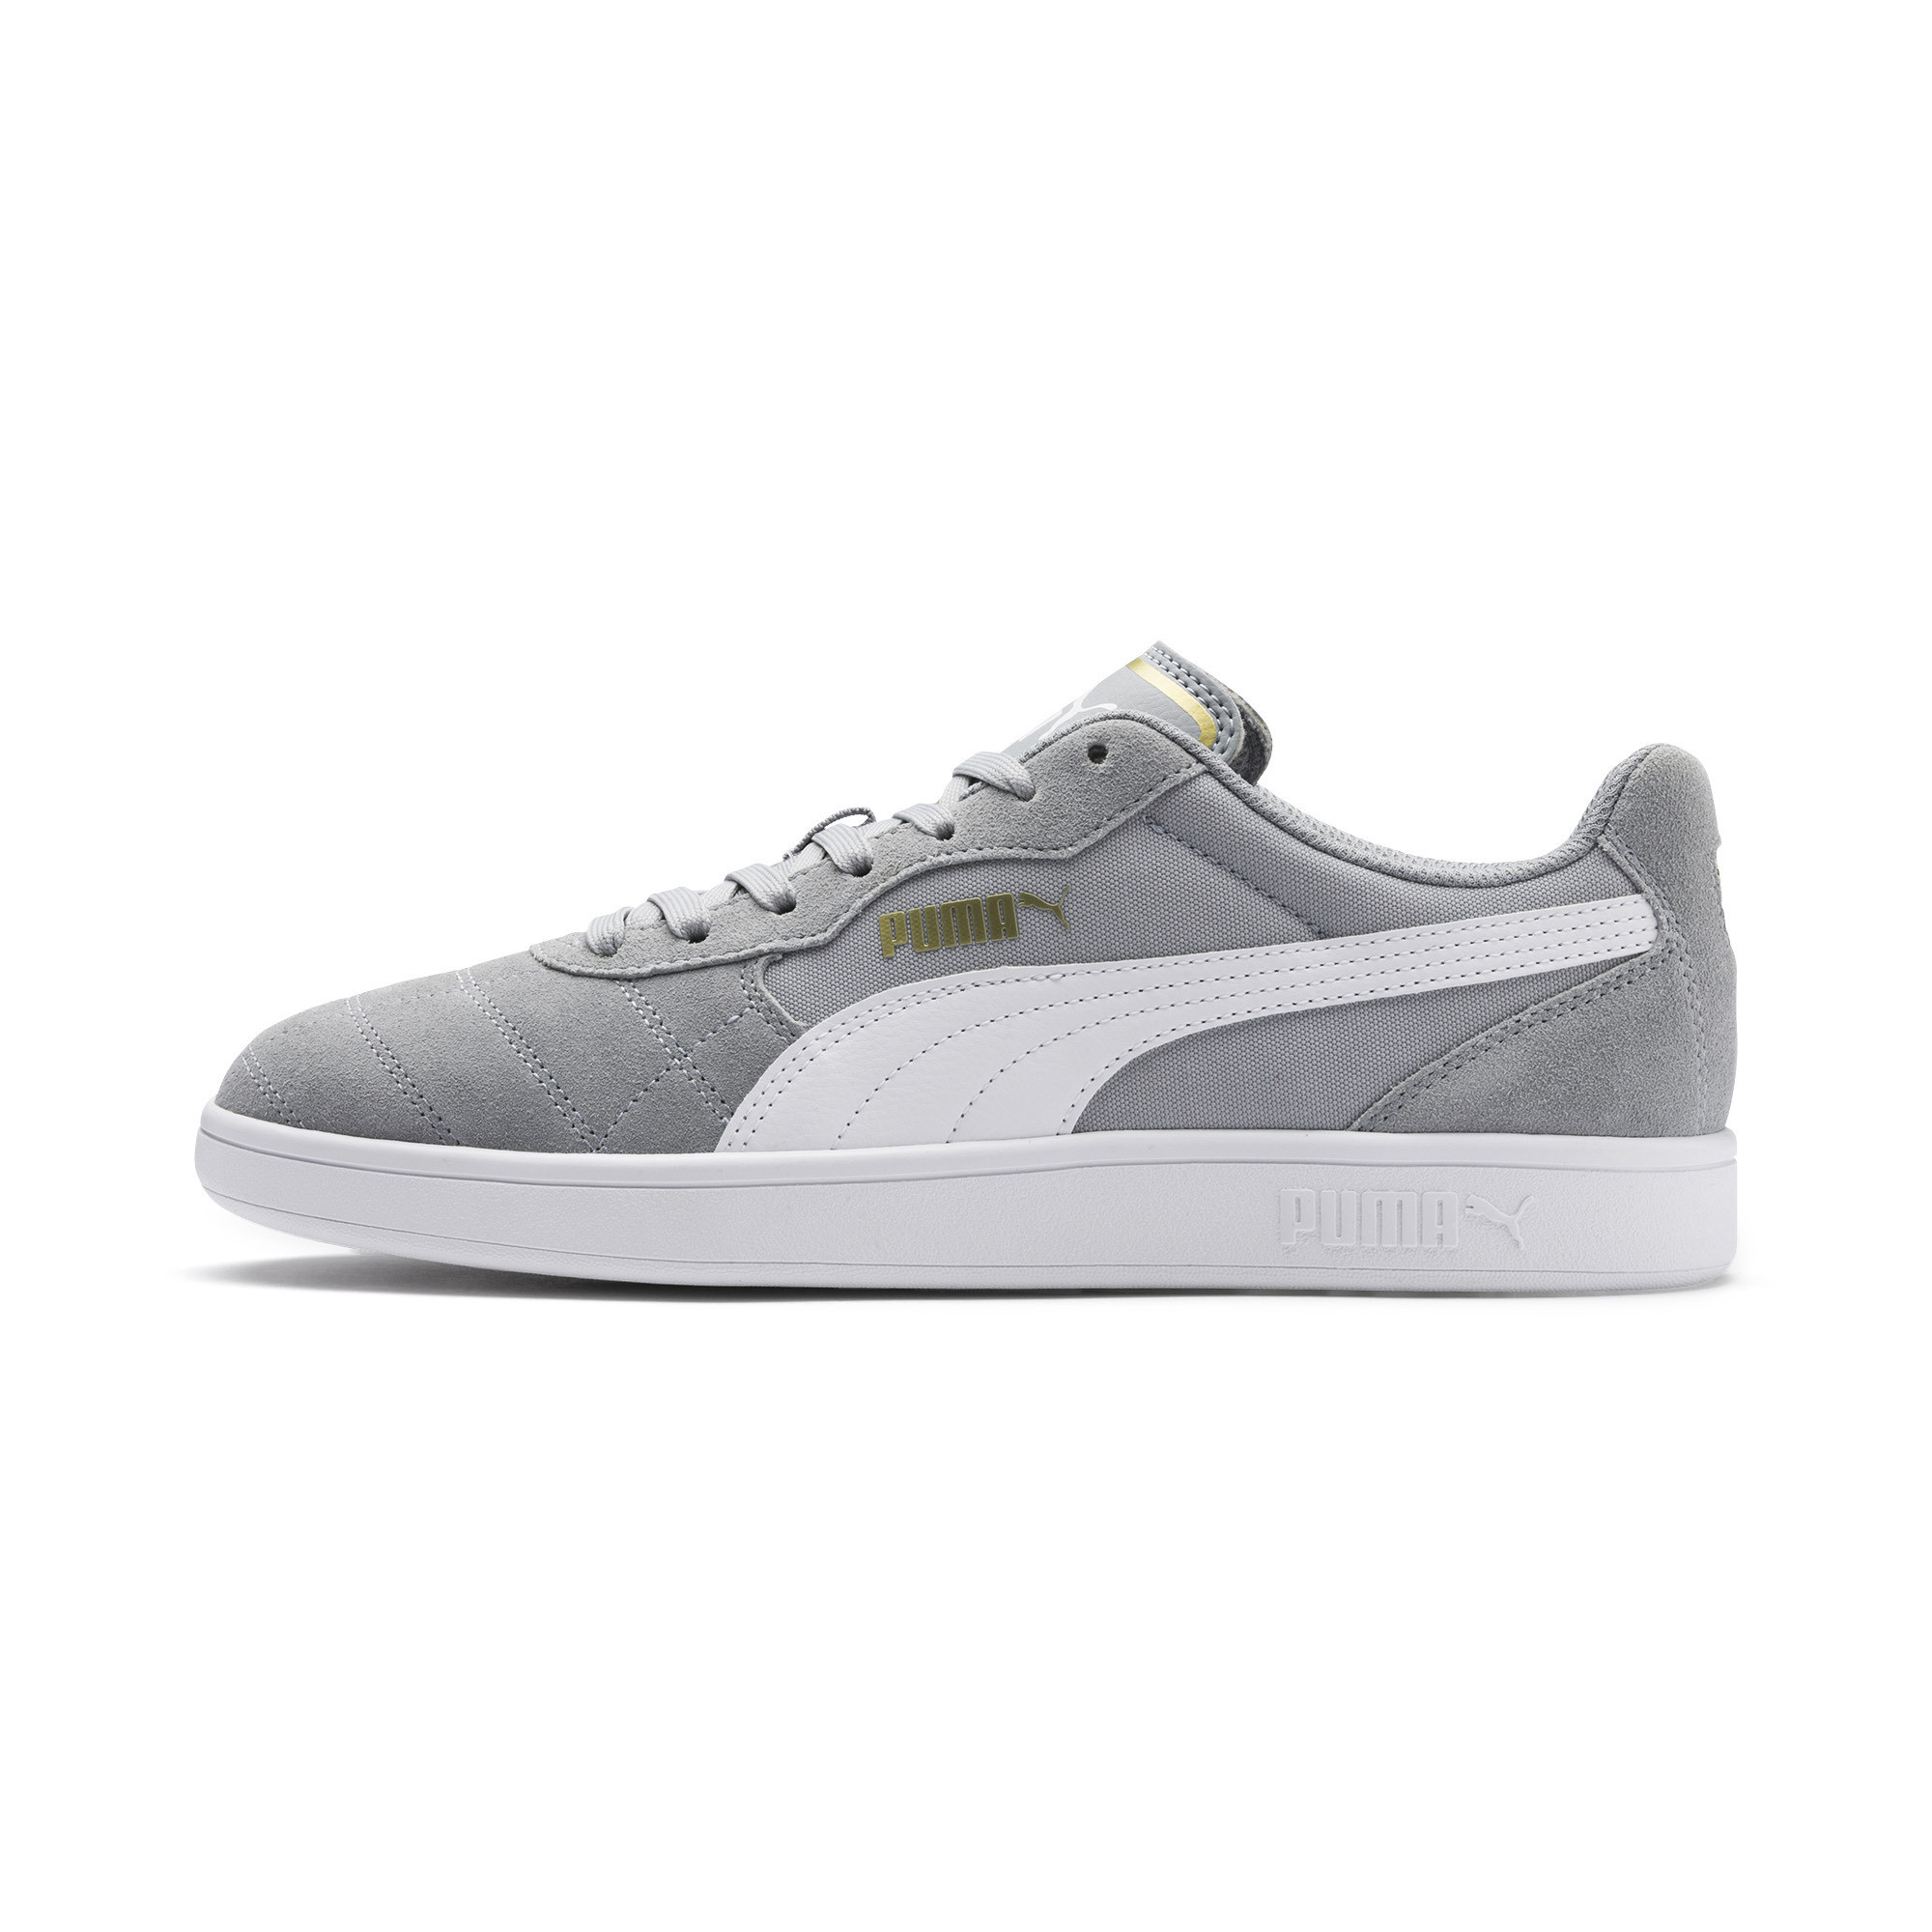 PUMA-Astro-Kick-Men-039-s-Sneakers-Men-Shoe-Basics thumbnail 13